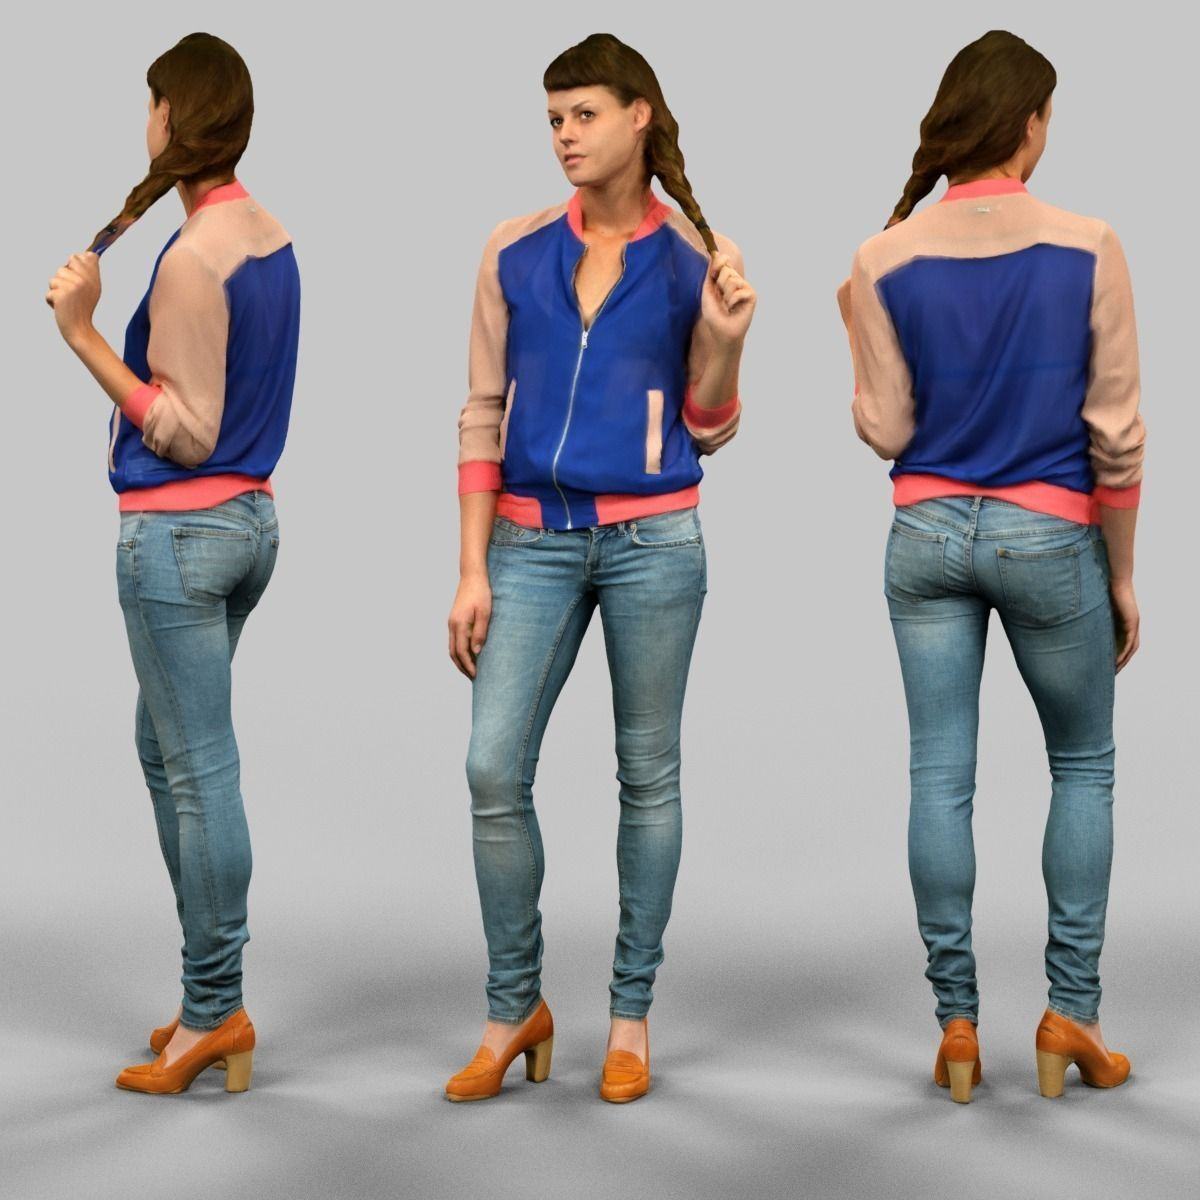 Girl in blue vest and jeans